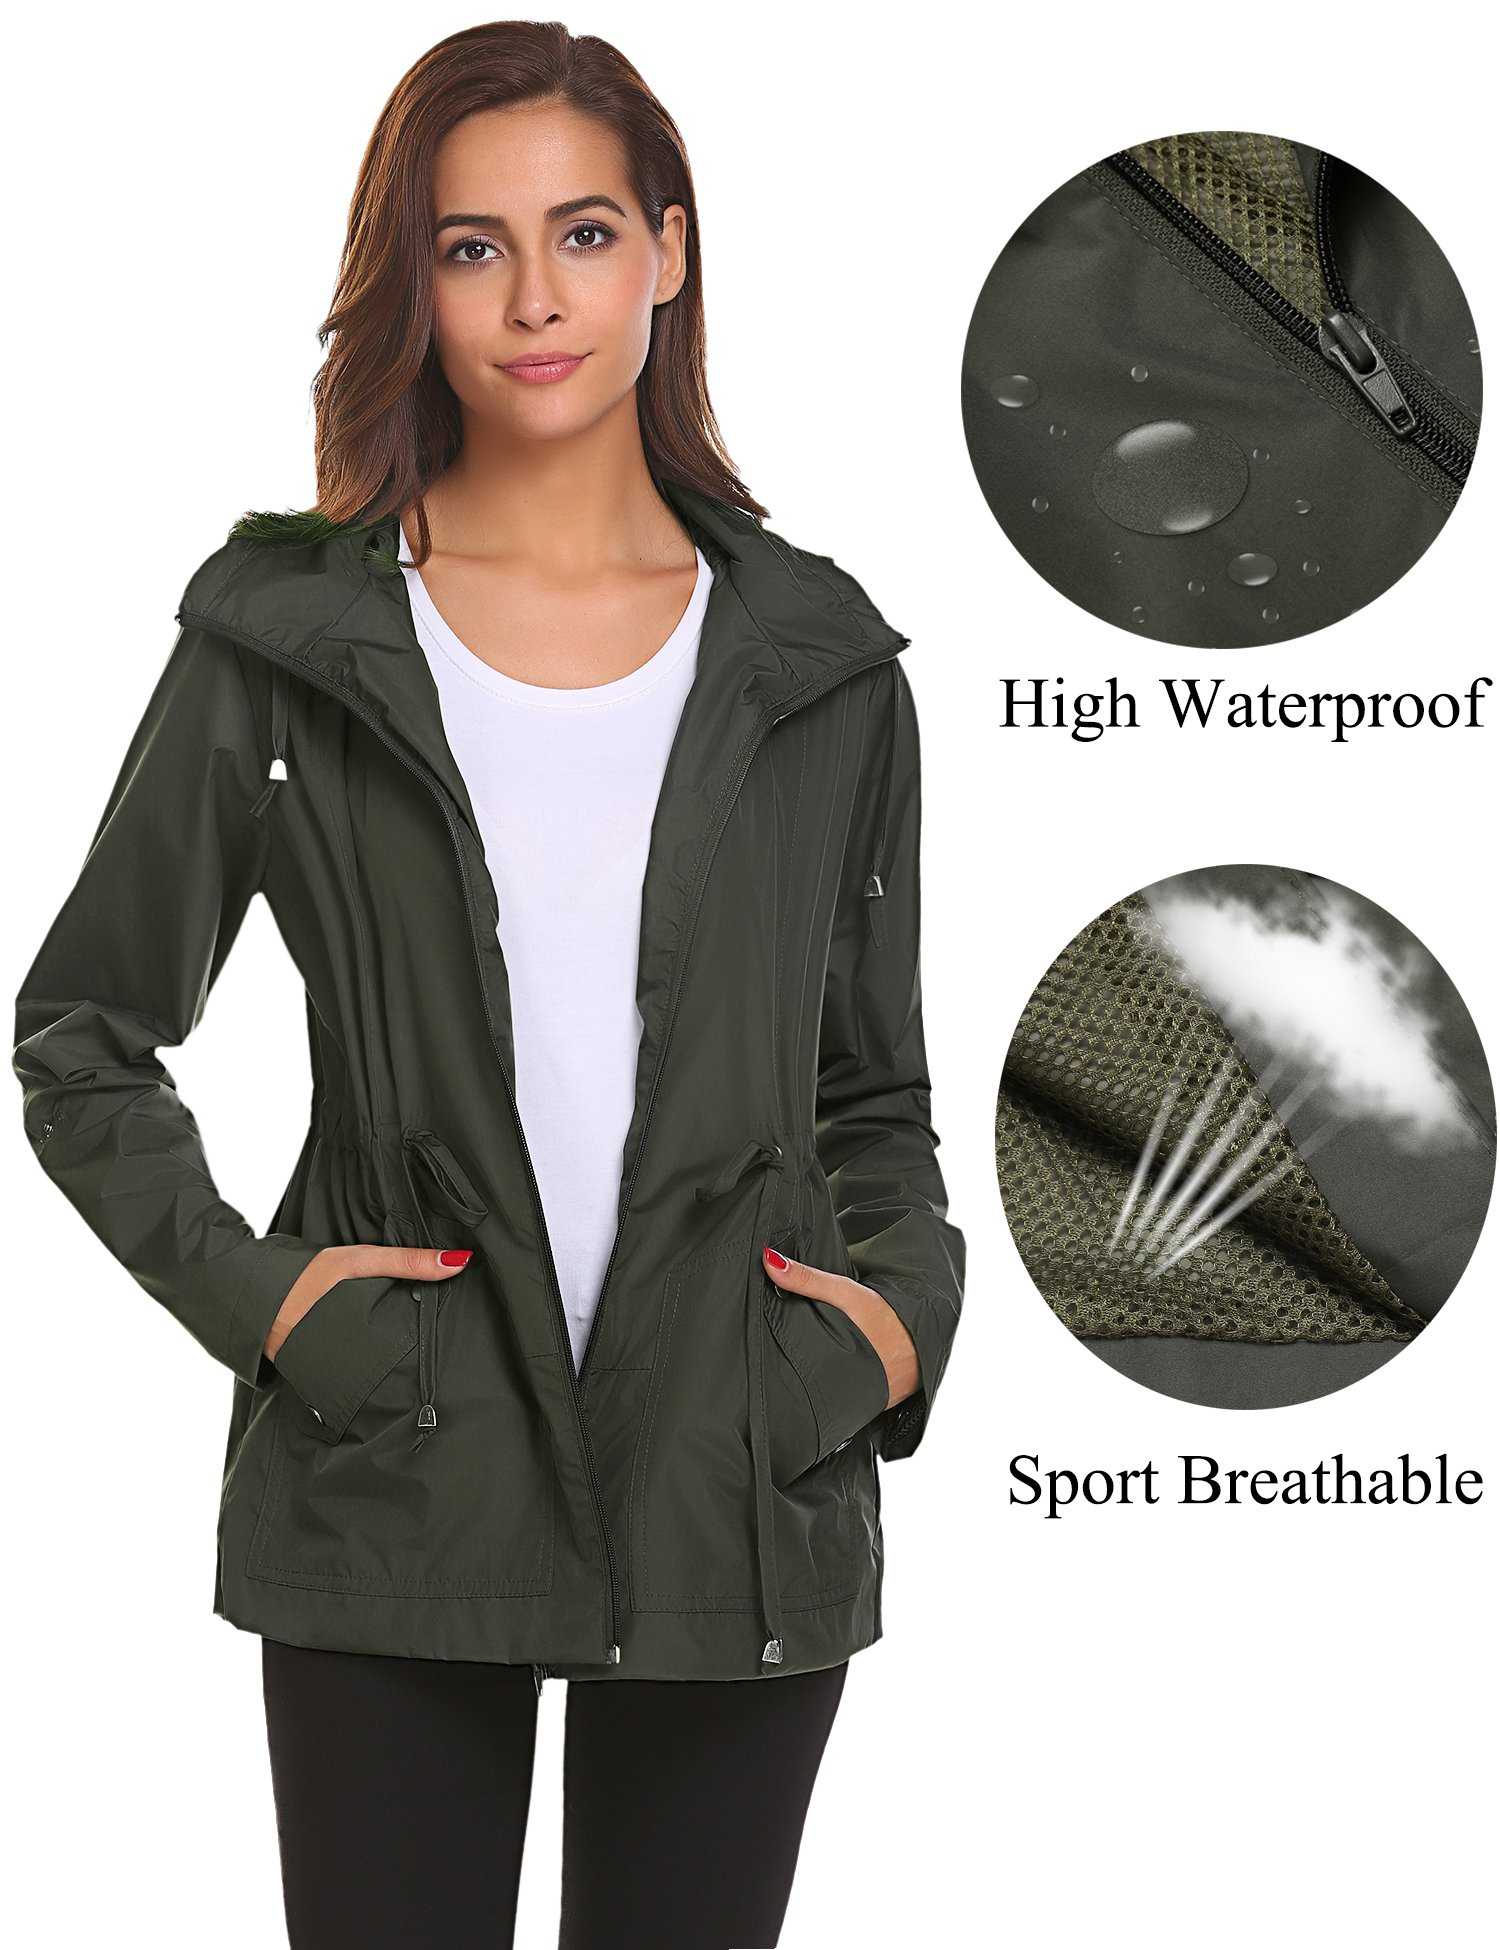 Romanstii Shell Jackets Women Waterproof,Sports Running Light Rain Coat Outdoor Breathable